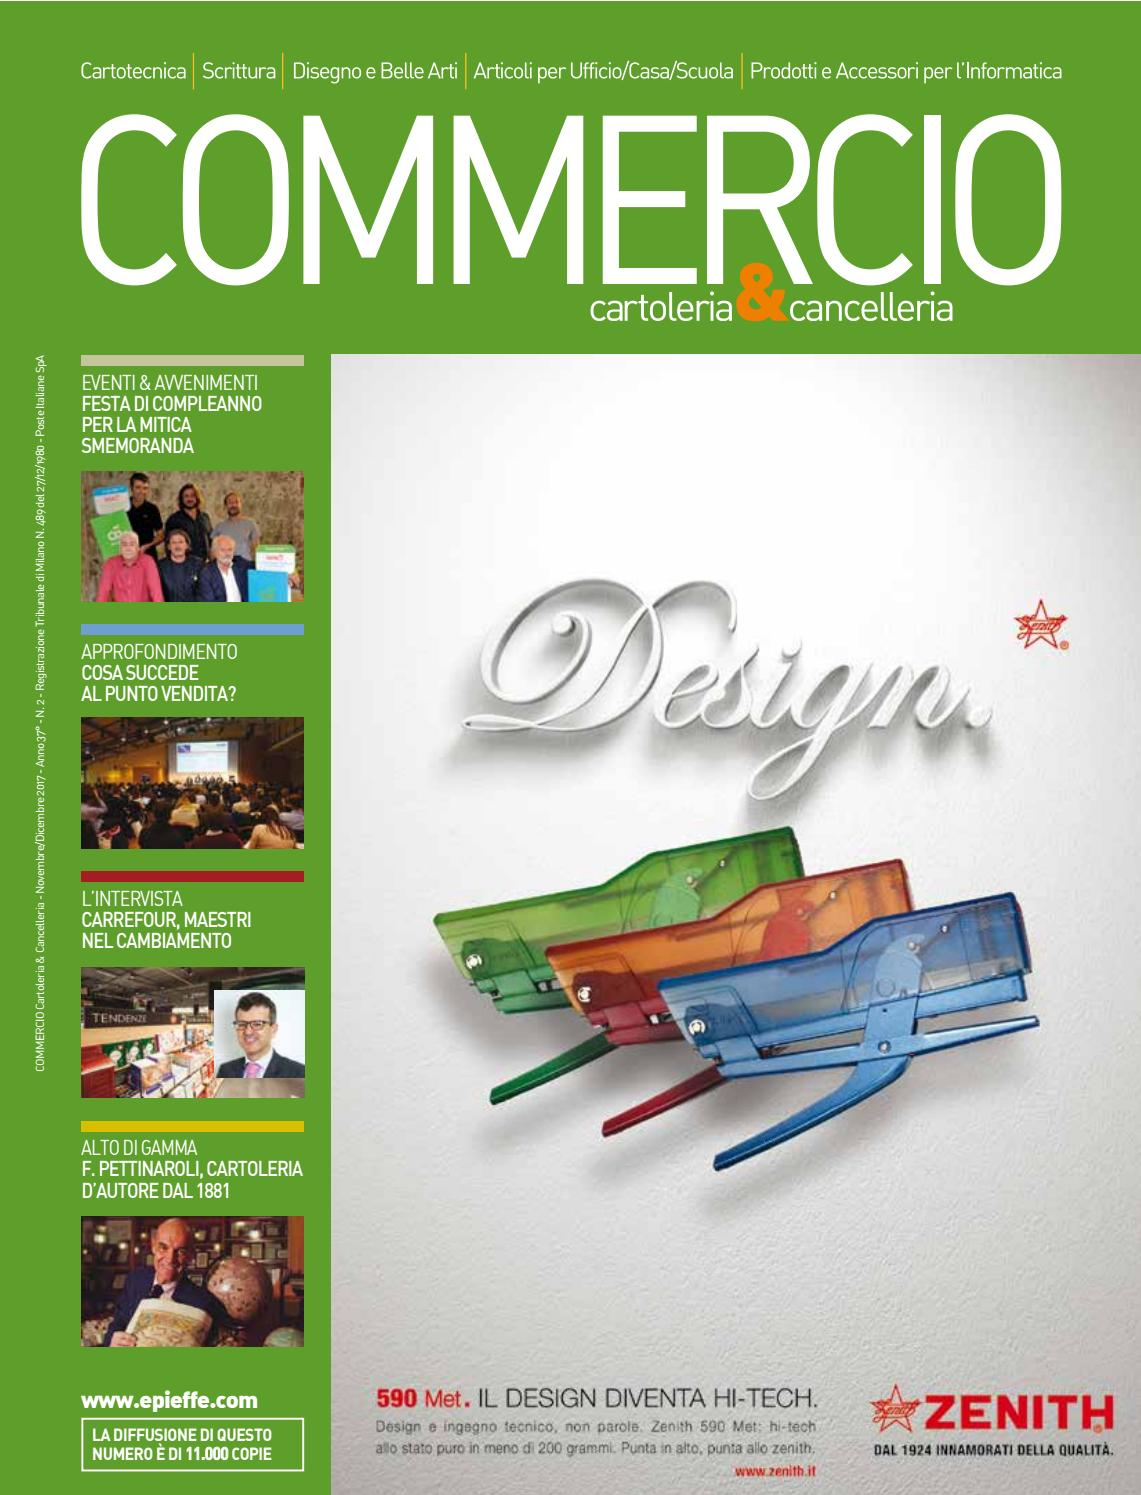 Commercio Cartoleria   Cancelleria Novembre Dicembre 2017 by COMMERCIO  Cartoleria   Cancelleria - issuu 3309f3abc50